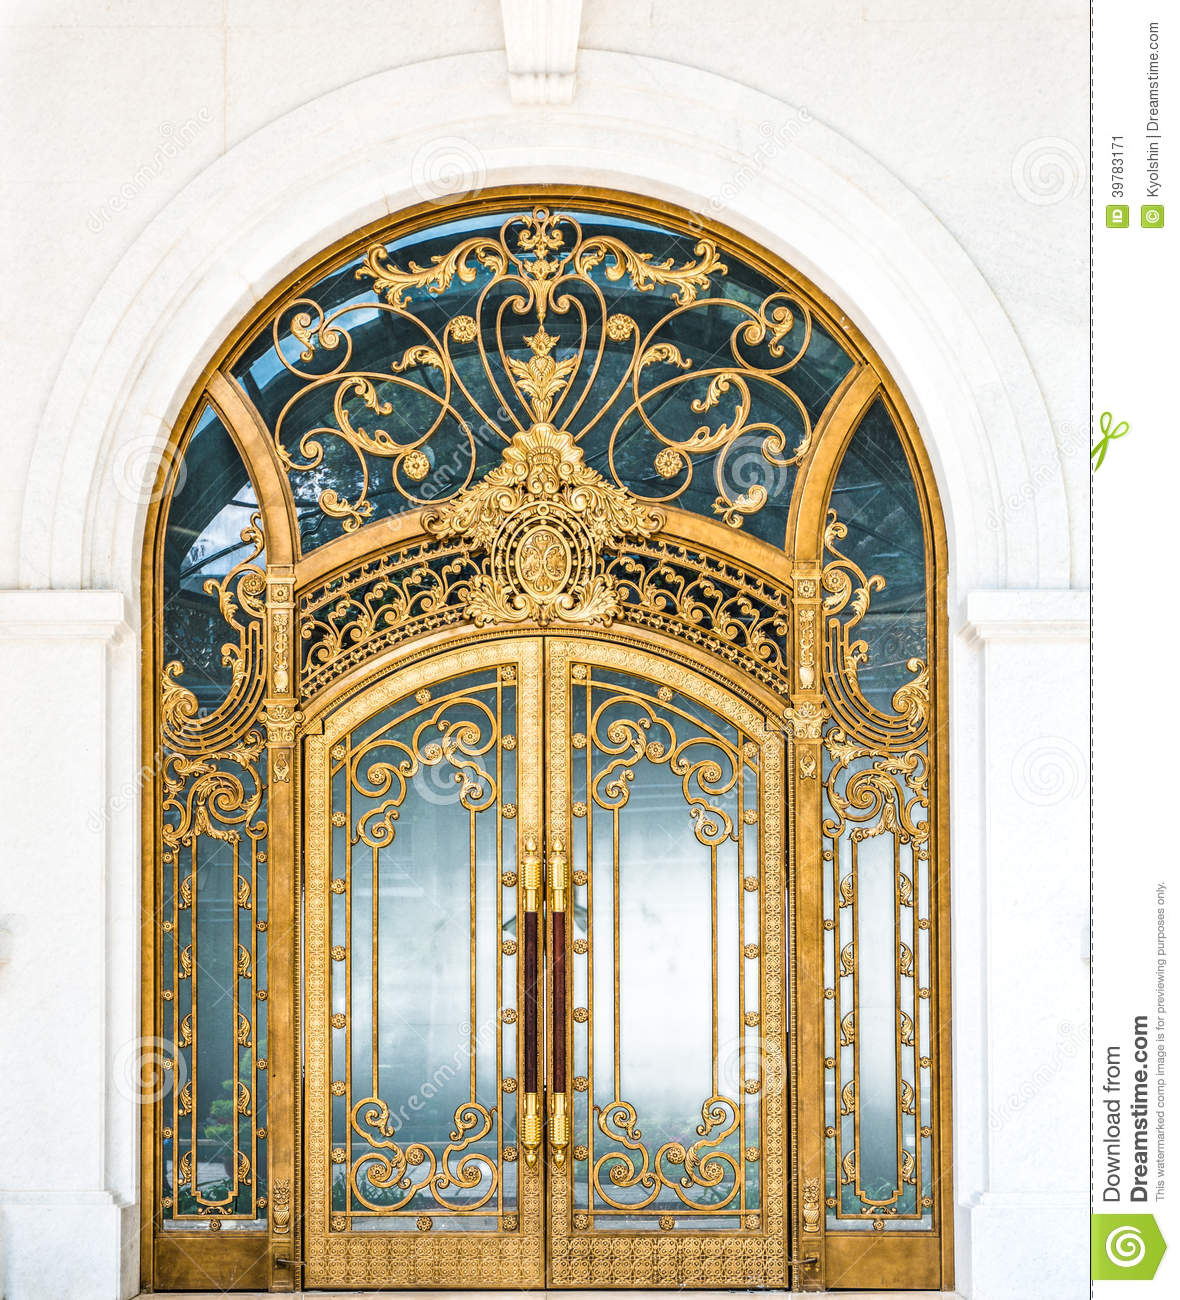 Beautiful arched doorway. Door made of wood, gold and glass reflecting ...